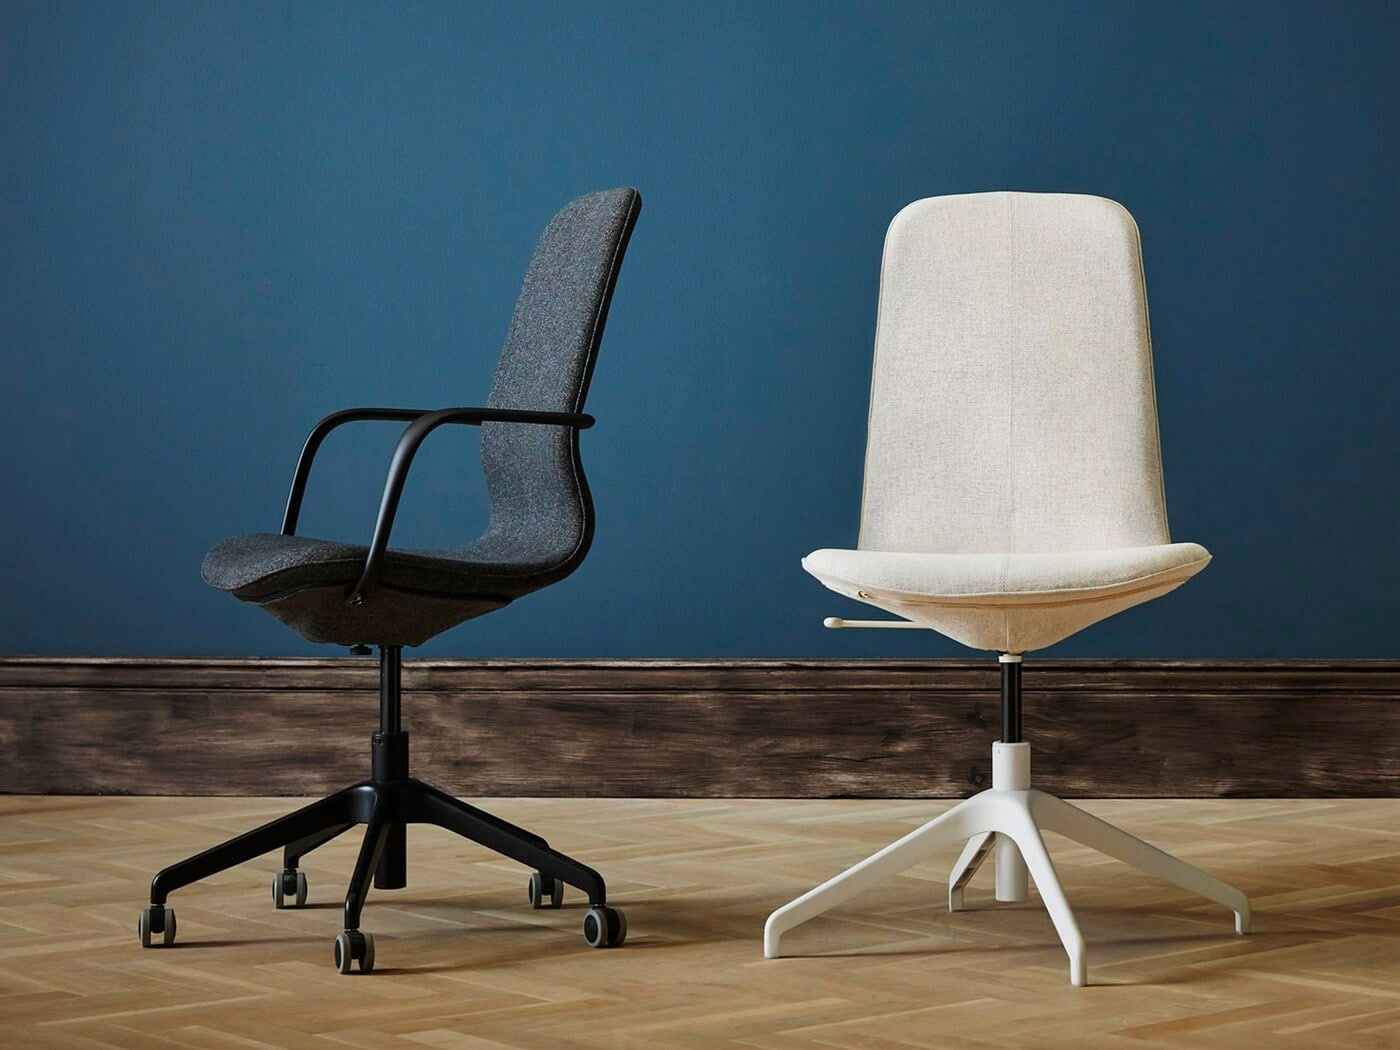 Build your own Office chair planner